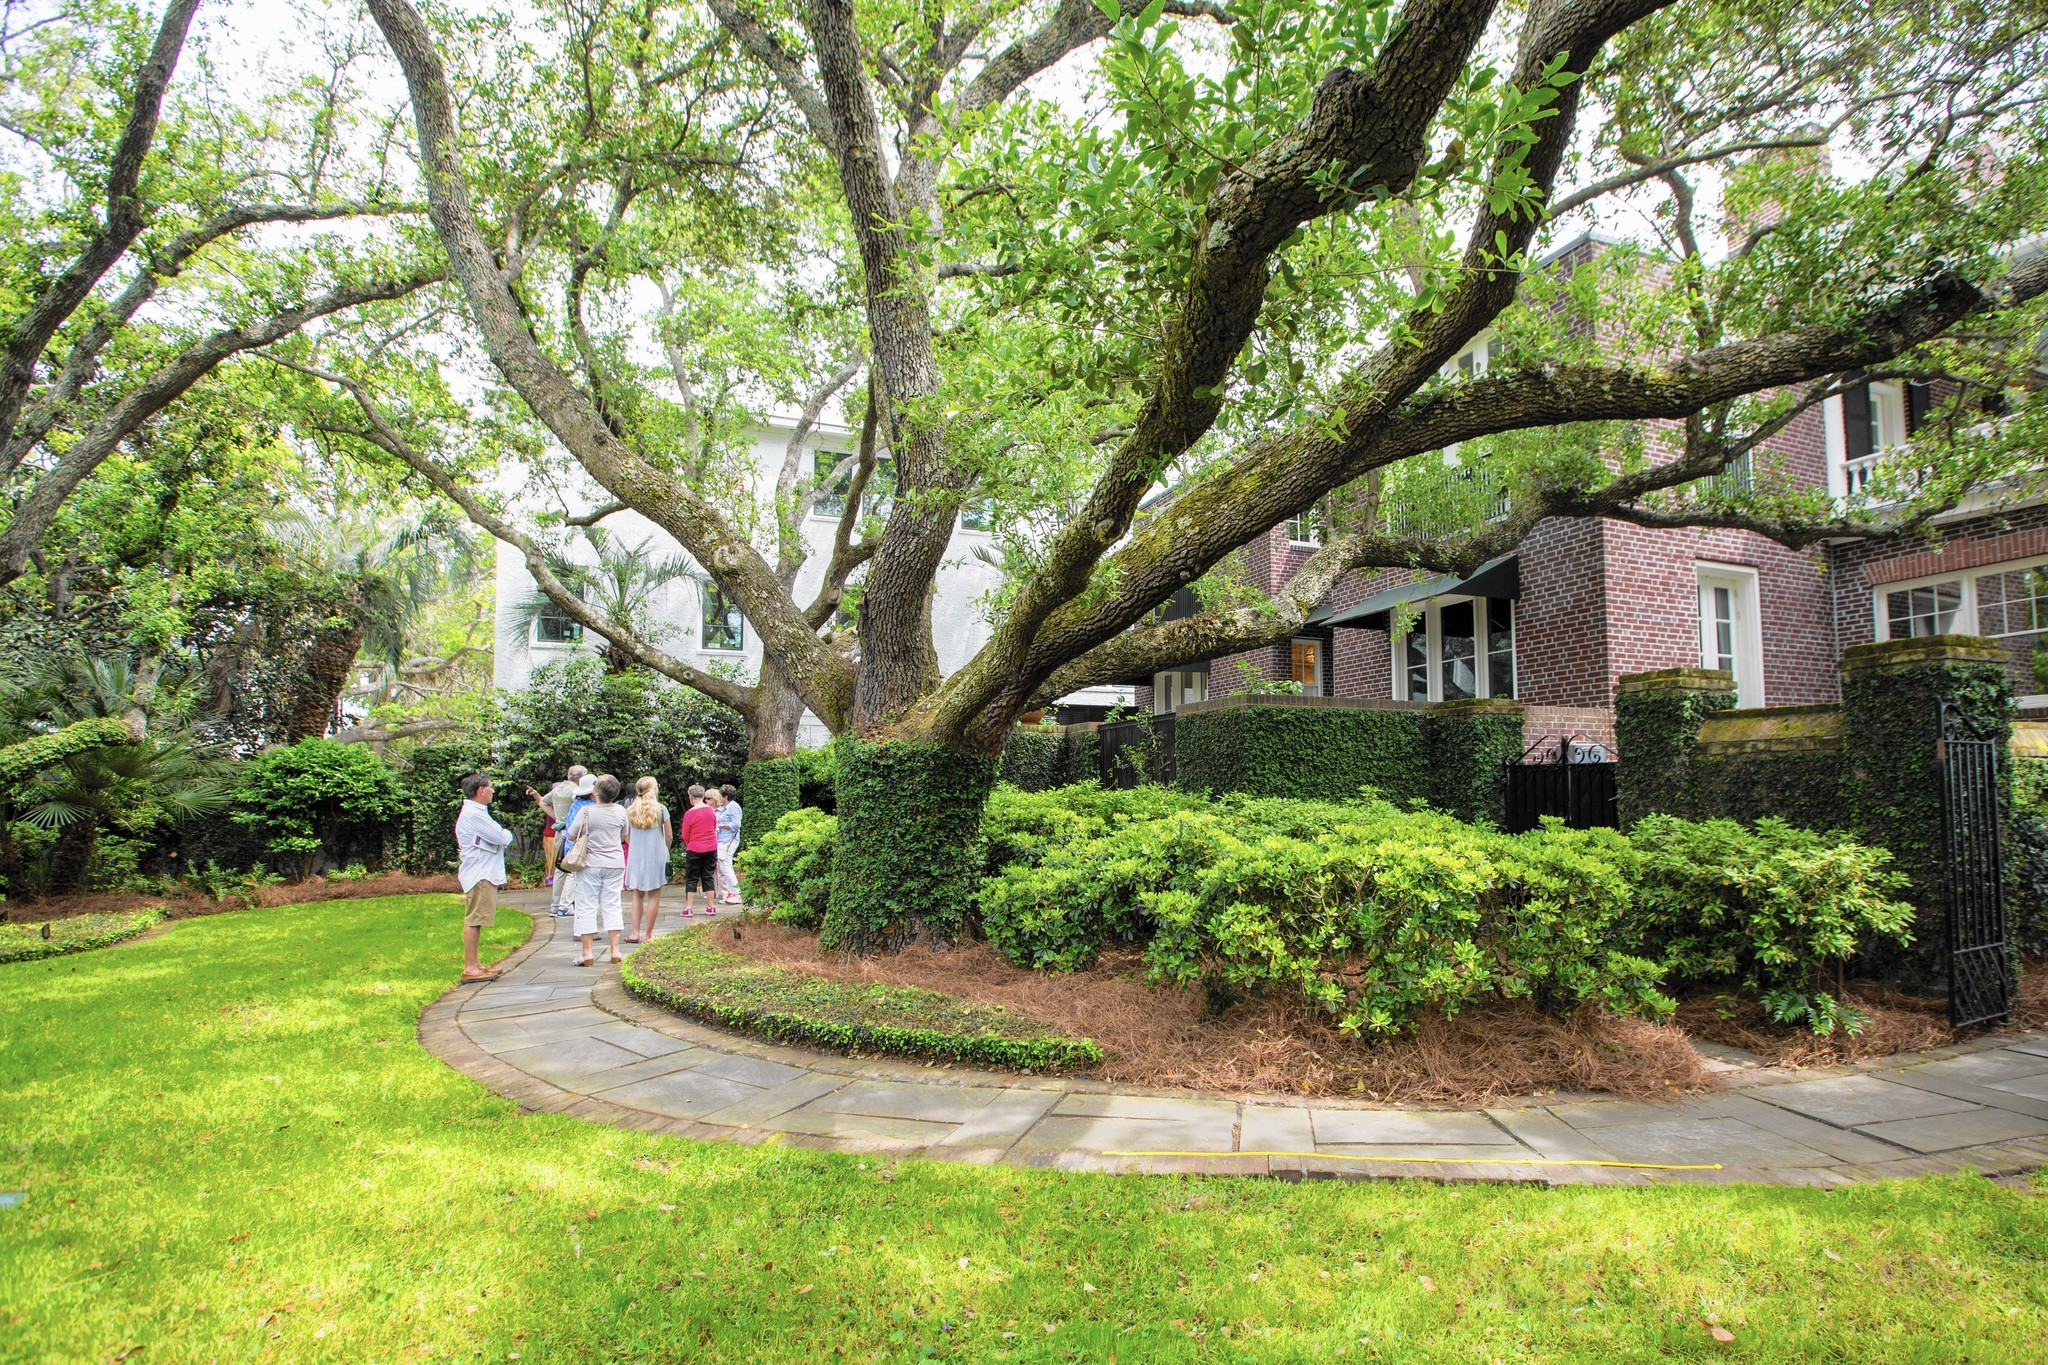 Visit Charleston in the spring for blooming festival and food scene on long house designs, san francisco house designs, west coast house designs, carriage house designs, anderson house designs, foxtrot house designs, san diego house designs, carolina house designs, bunker house designs, louisiana house designs, jakarta house designs, pueblo house designs, low country house designs, florida house designs, hurricane house designs, chicago house designs, austin house designs, arizona house designs, miami house designs, key west house designs,